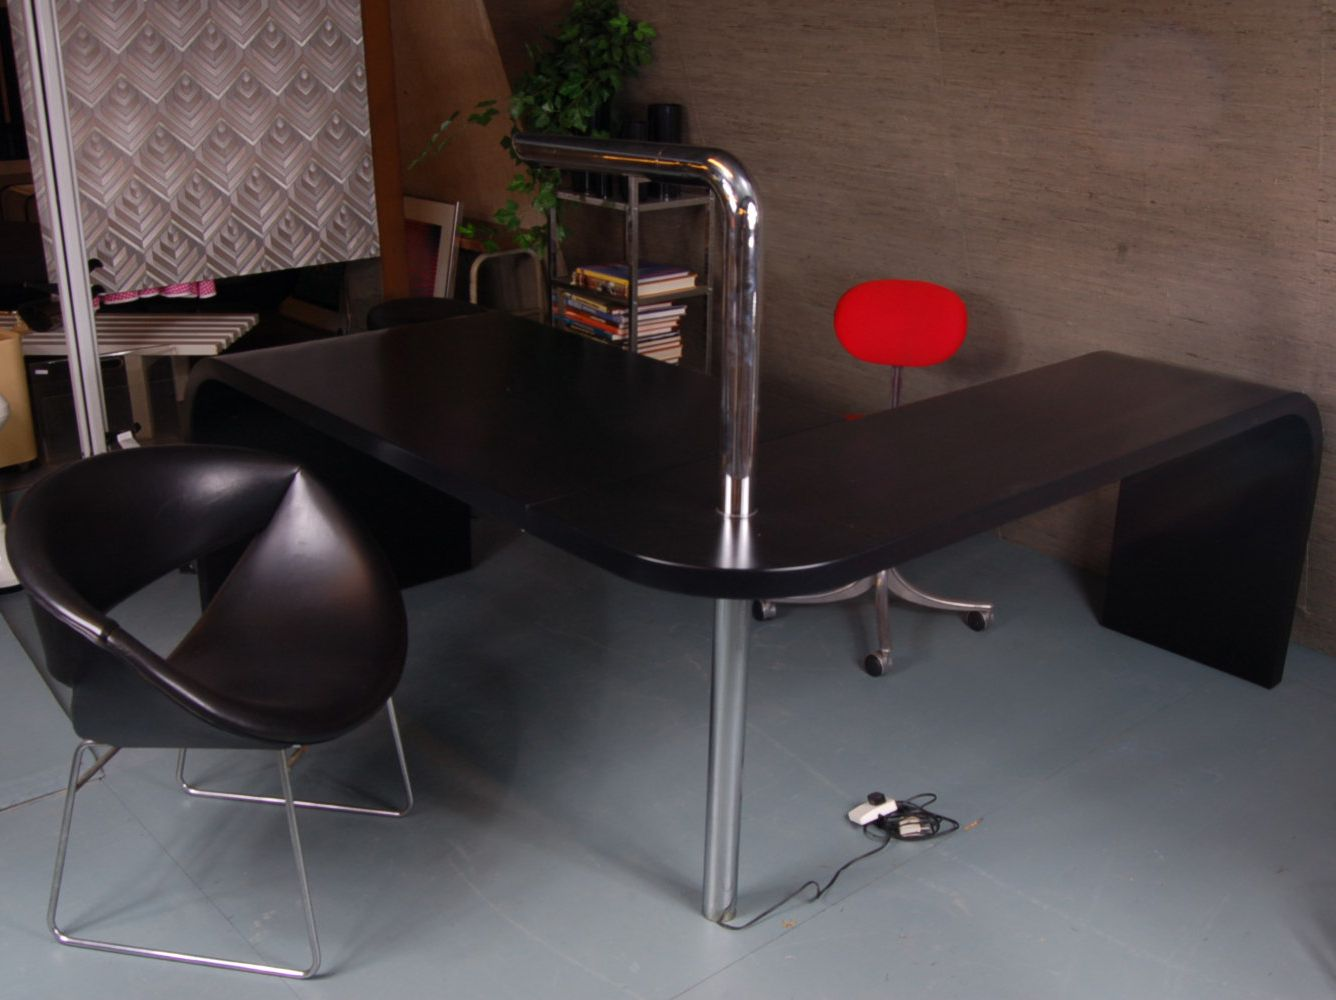 bureau avec lampe int gr e en chrome italie 1970s en vente sur pamono. Black Bedroom Furniture Sets. Home Design Ideas